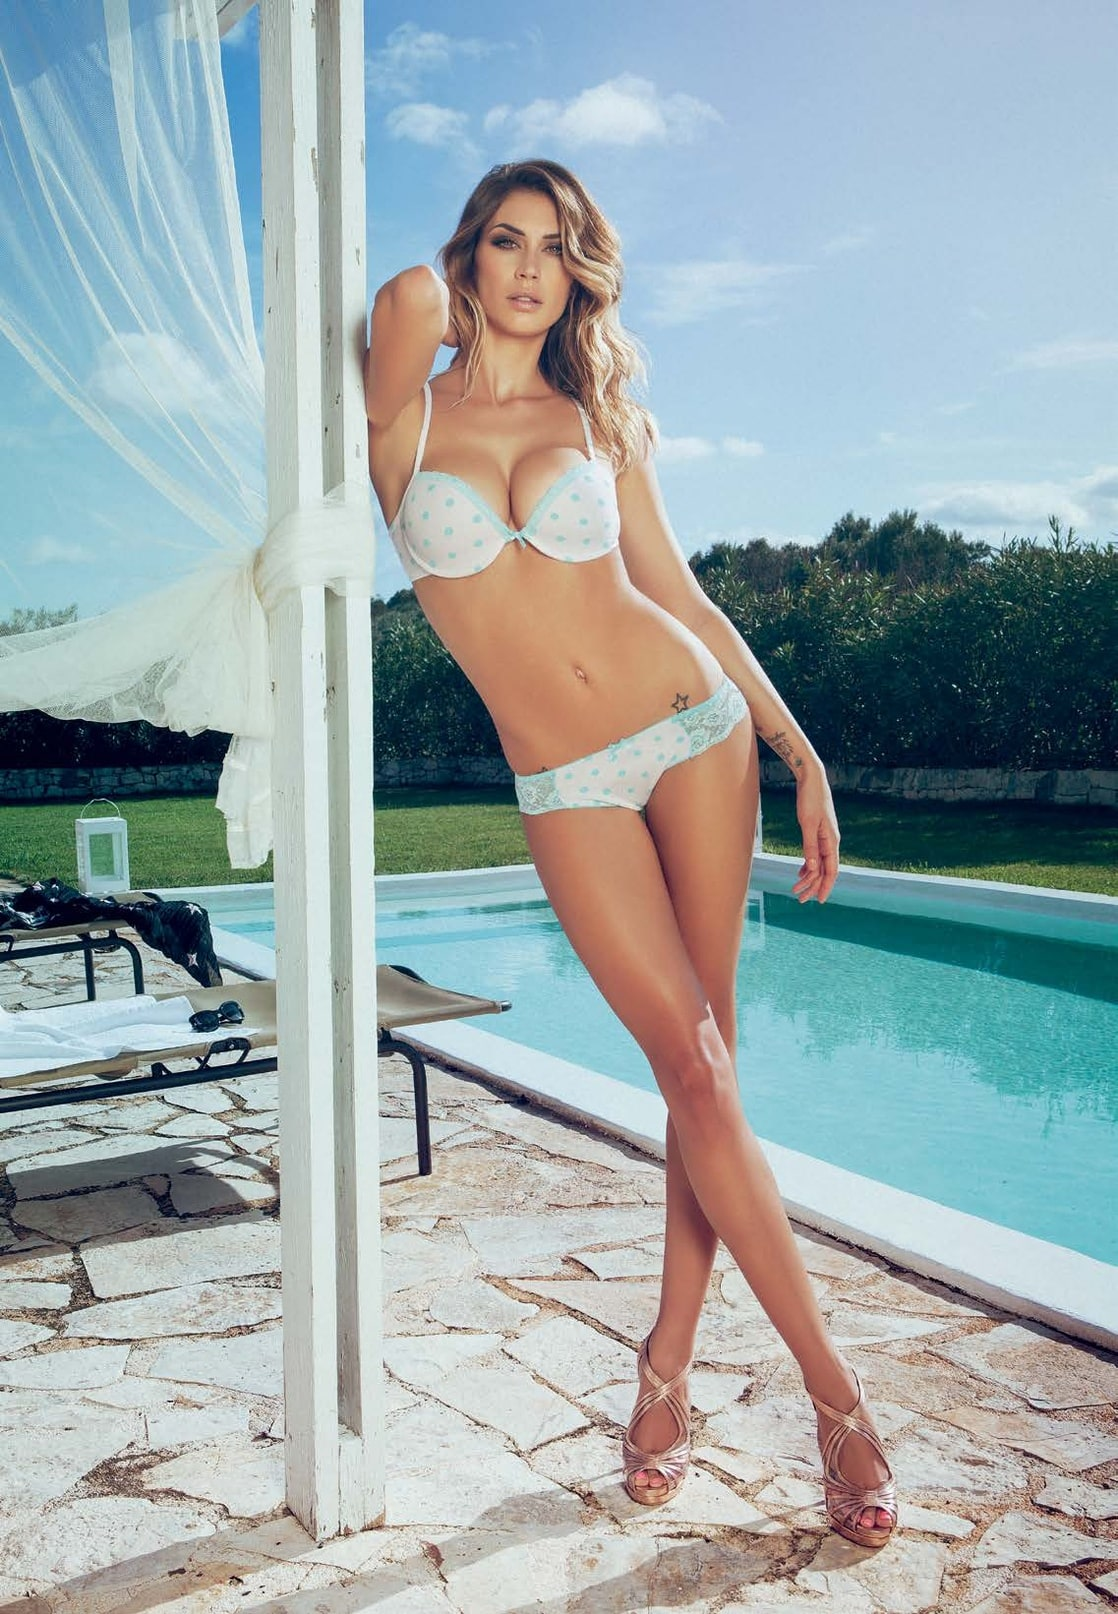 Picture of melissa satta for Sexy image 2015